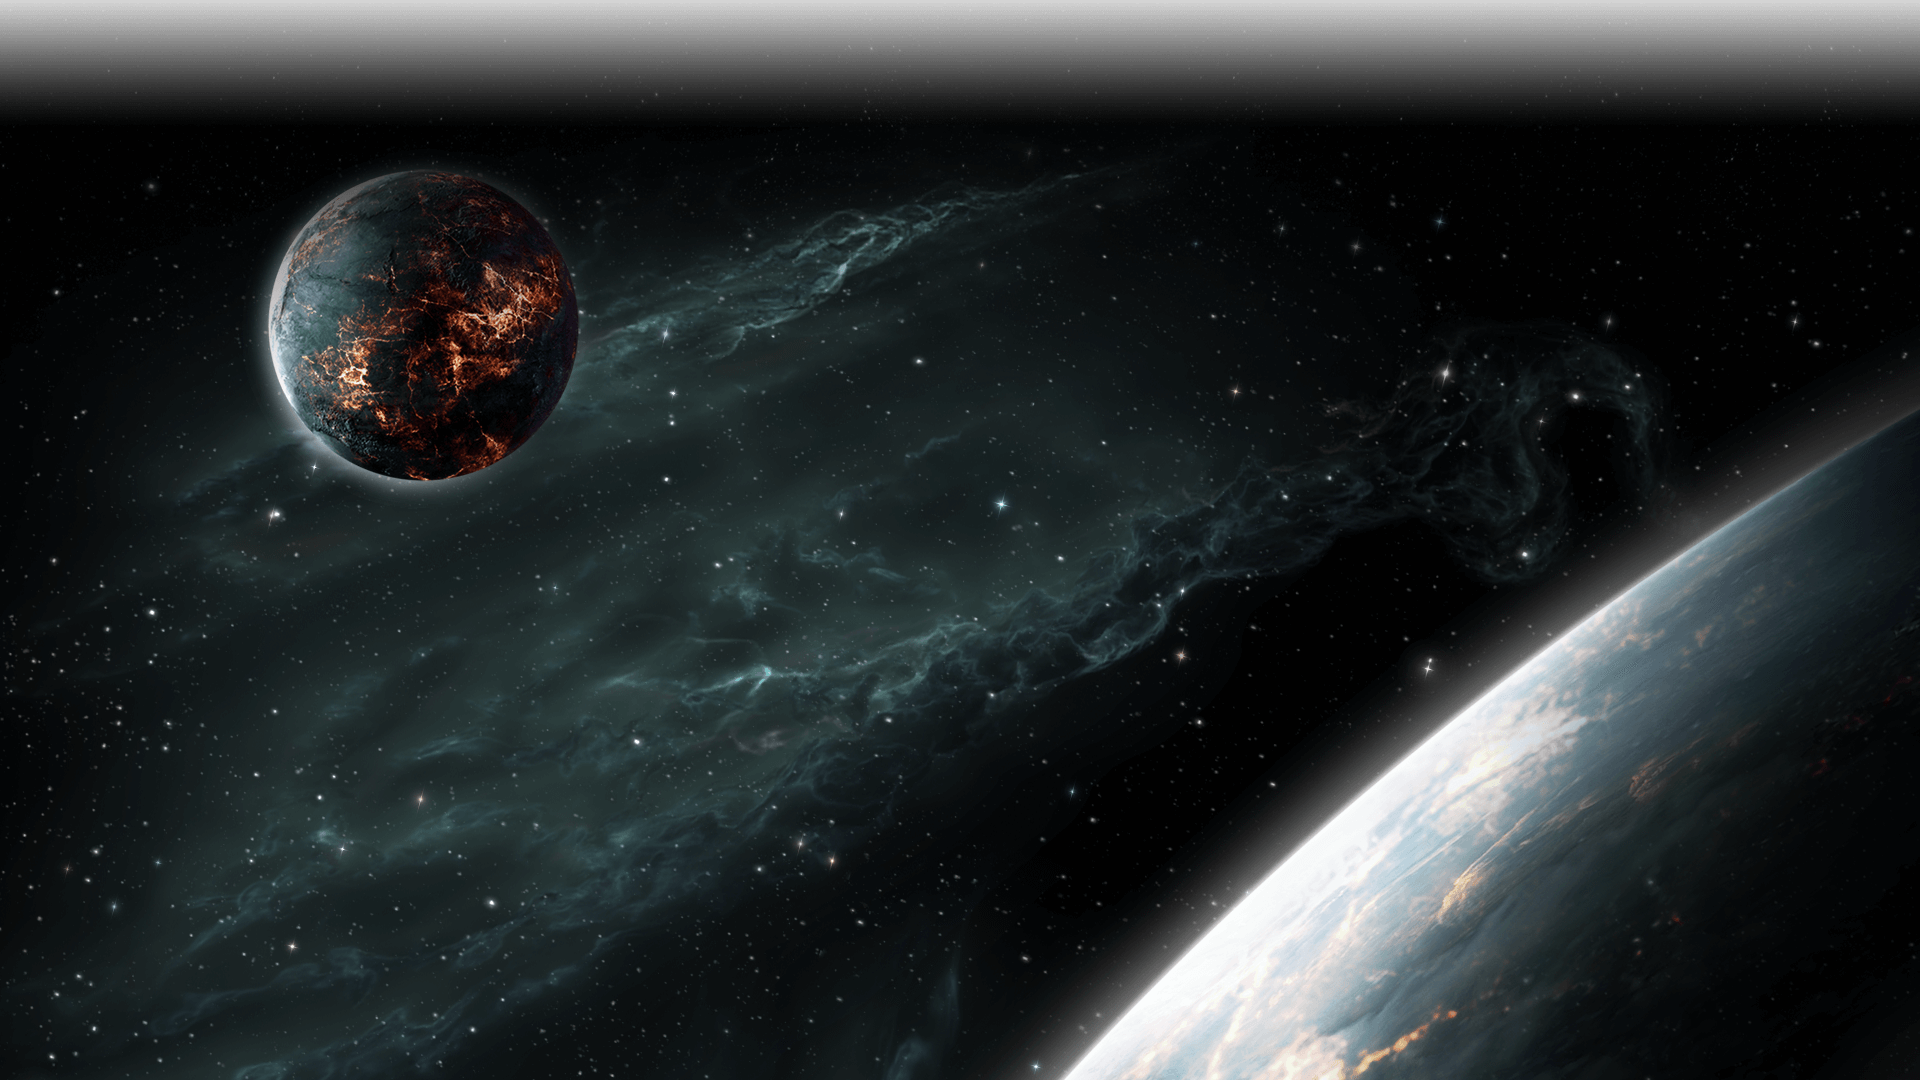 IMAGE(https://web.ccpgamescdn.com/eveonlineassets/landing/discovery/planets3.png)